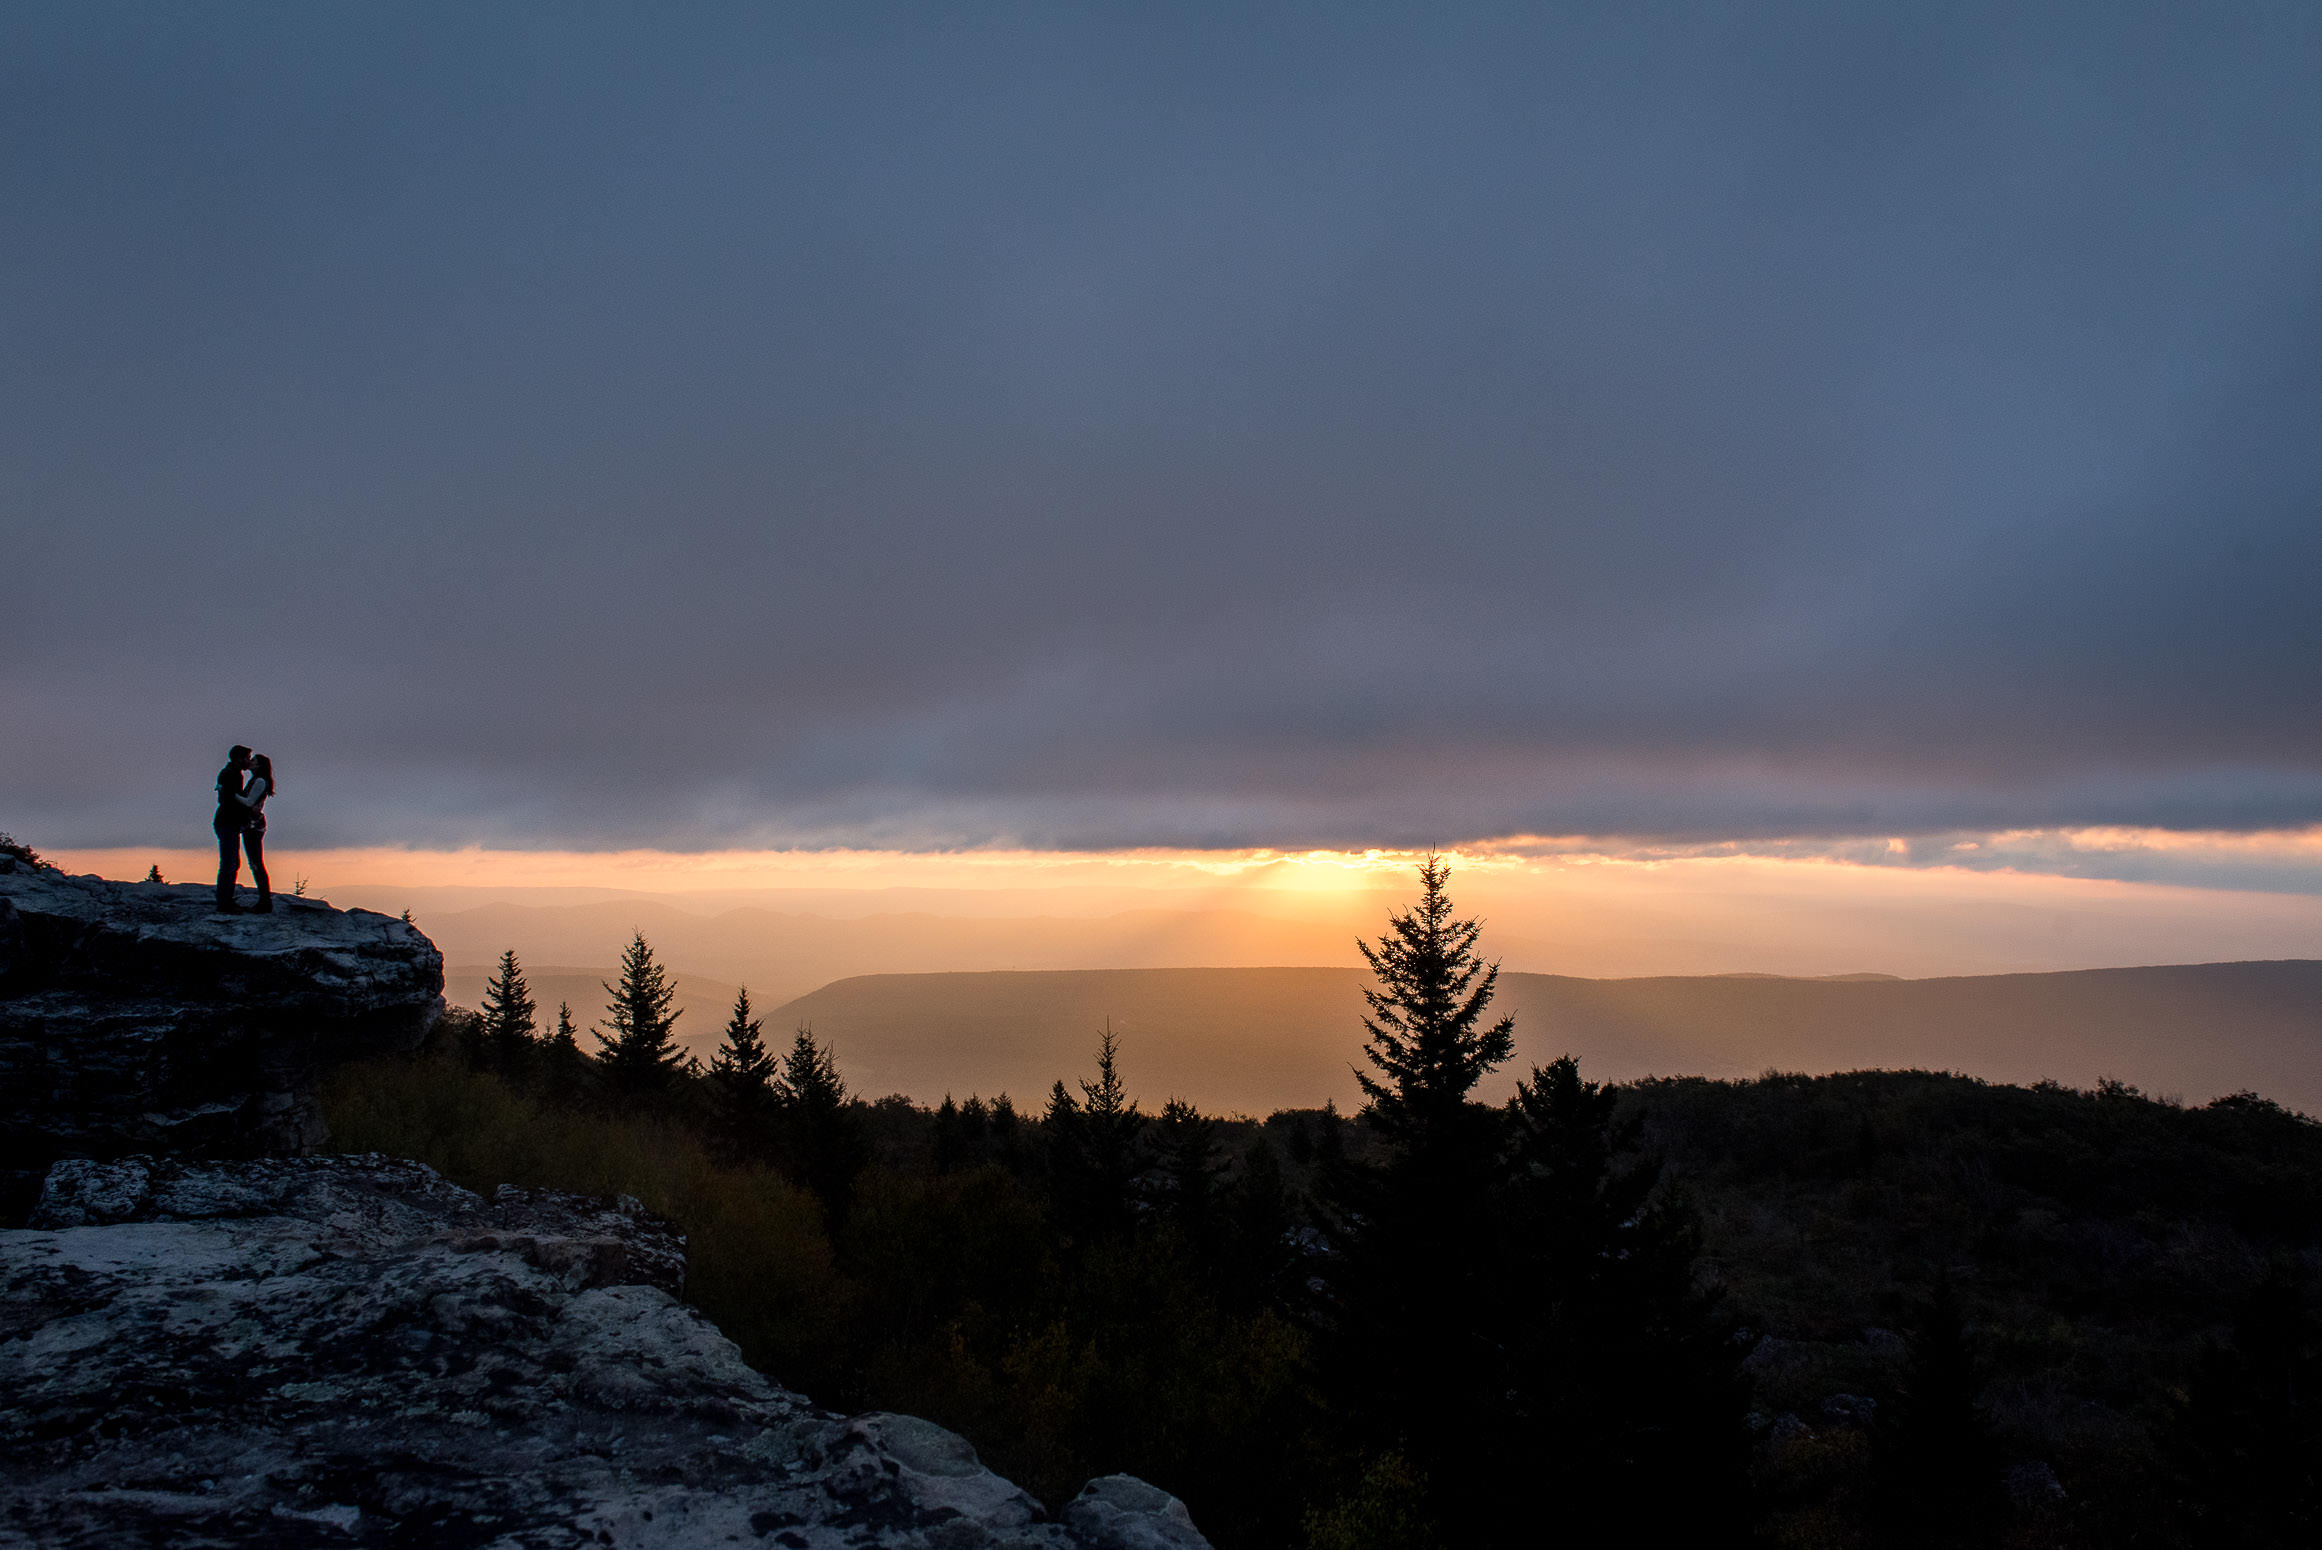 Sunrise engagement adventure in Dolly Sods rocky overlook